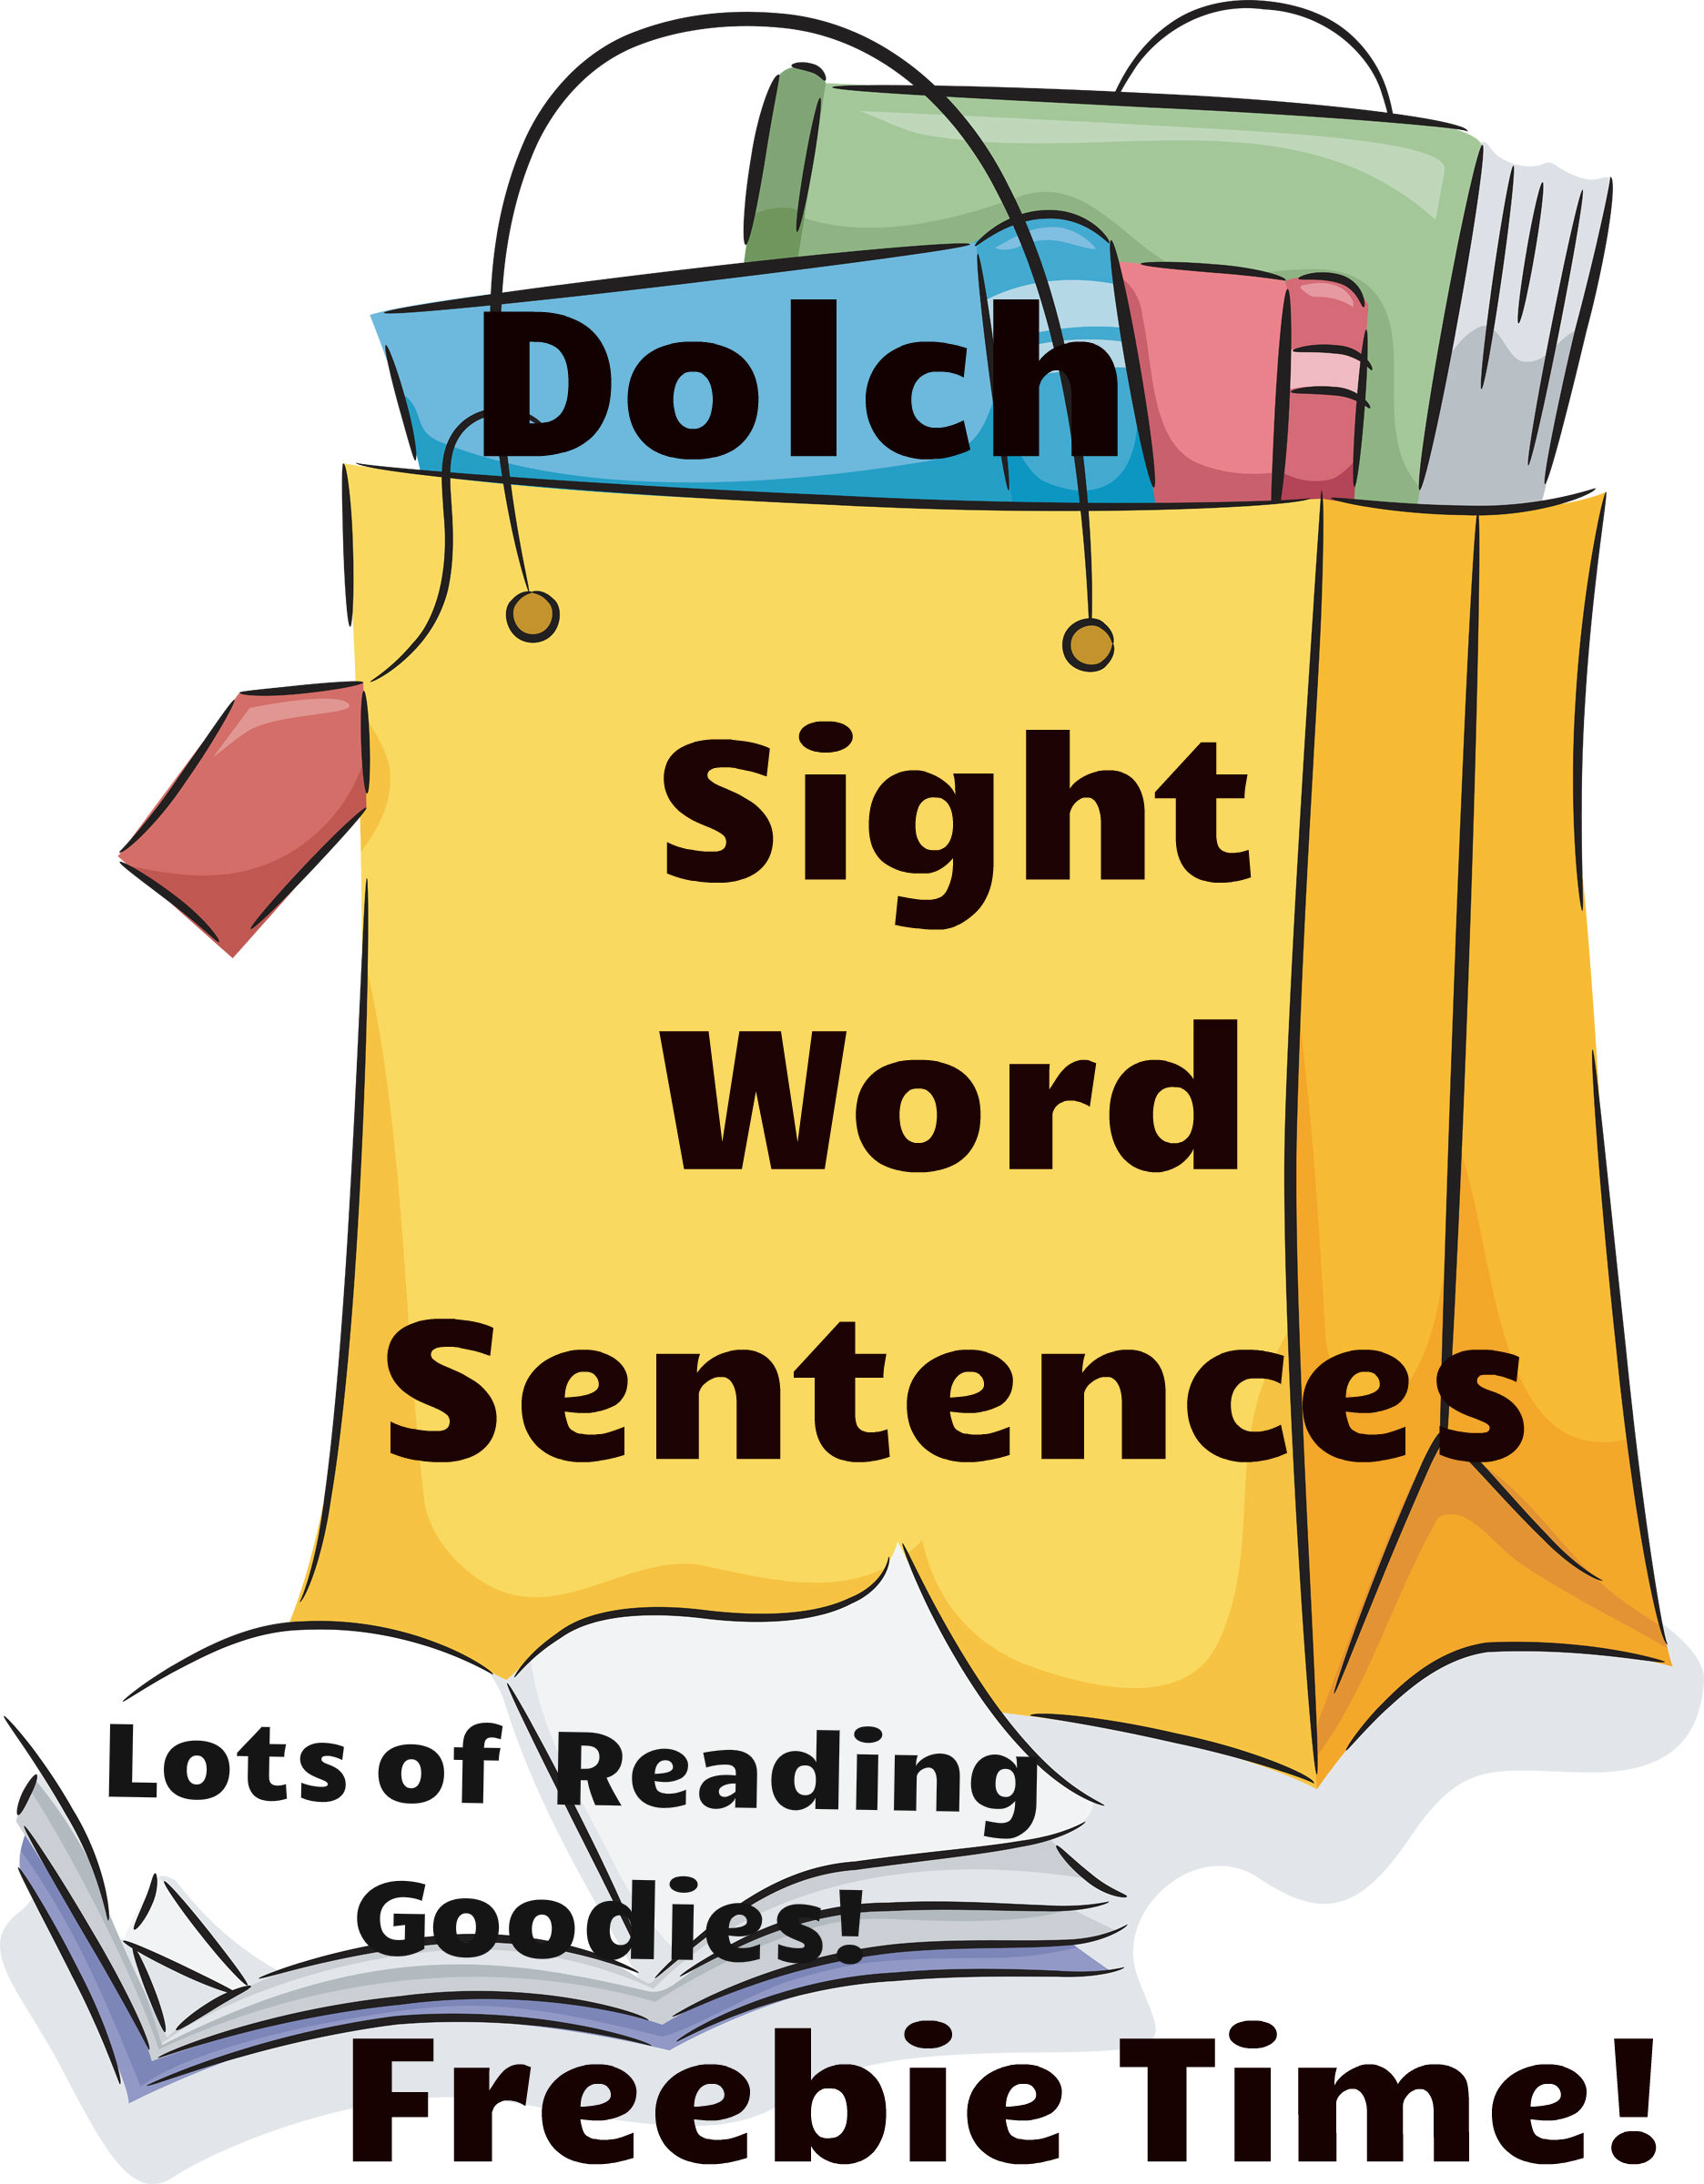 math worksheet : reading resources  free dolch sight word sentences  readyteacher  : Kindergarten Sight Word Sentences Worksheets